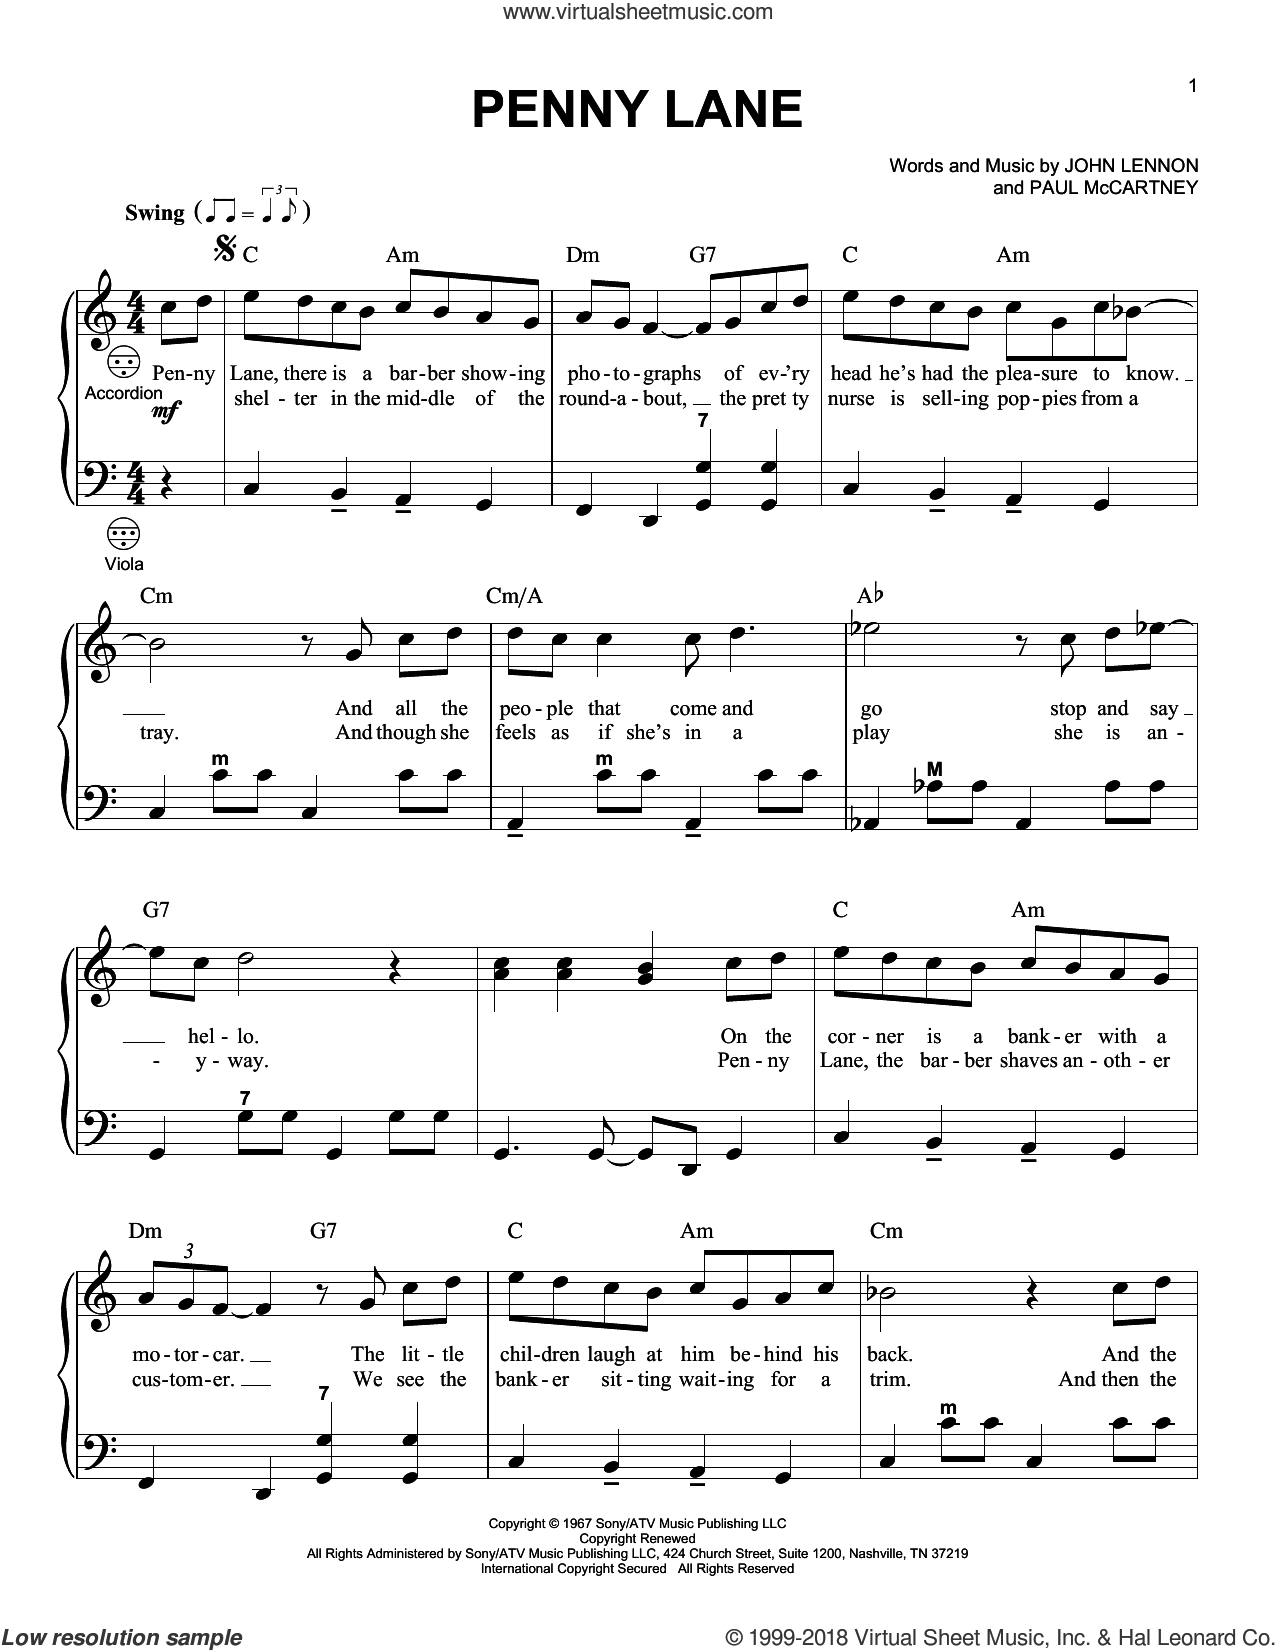 Penny Lane sheet music for accordion by The Beatles, John Lennon and Paul McCartney, intermediate skill level